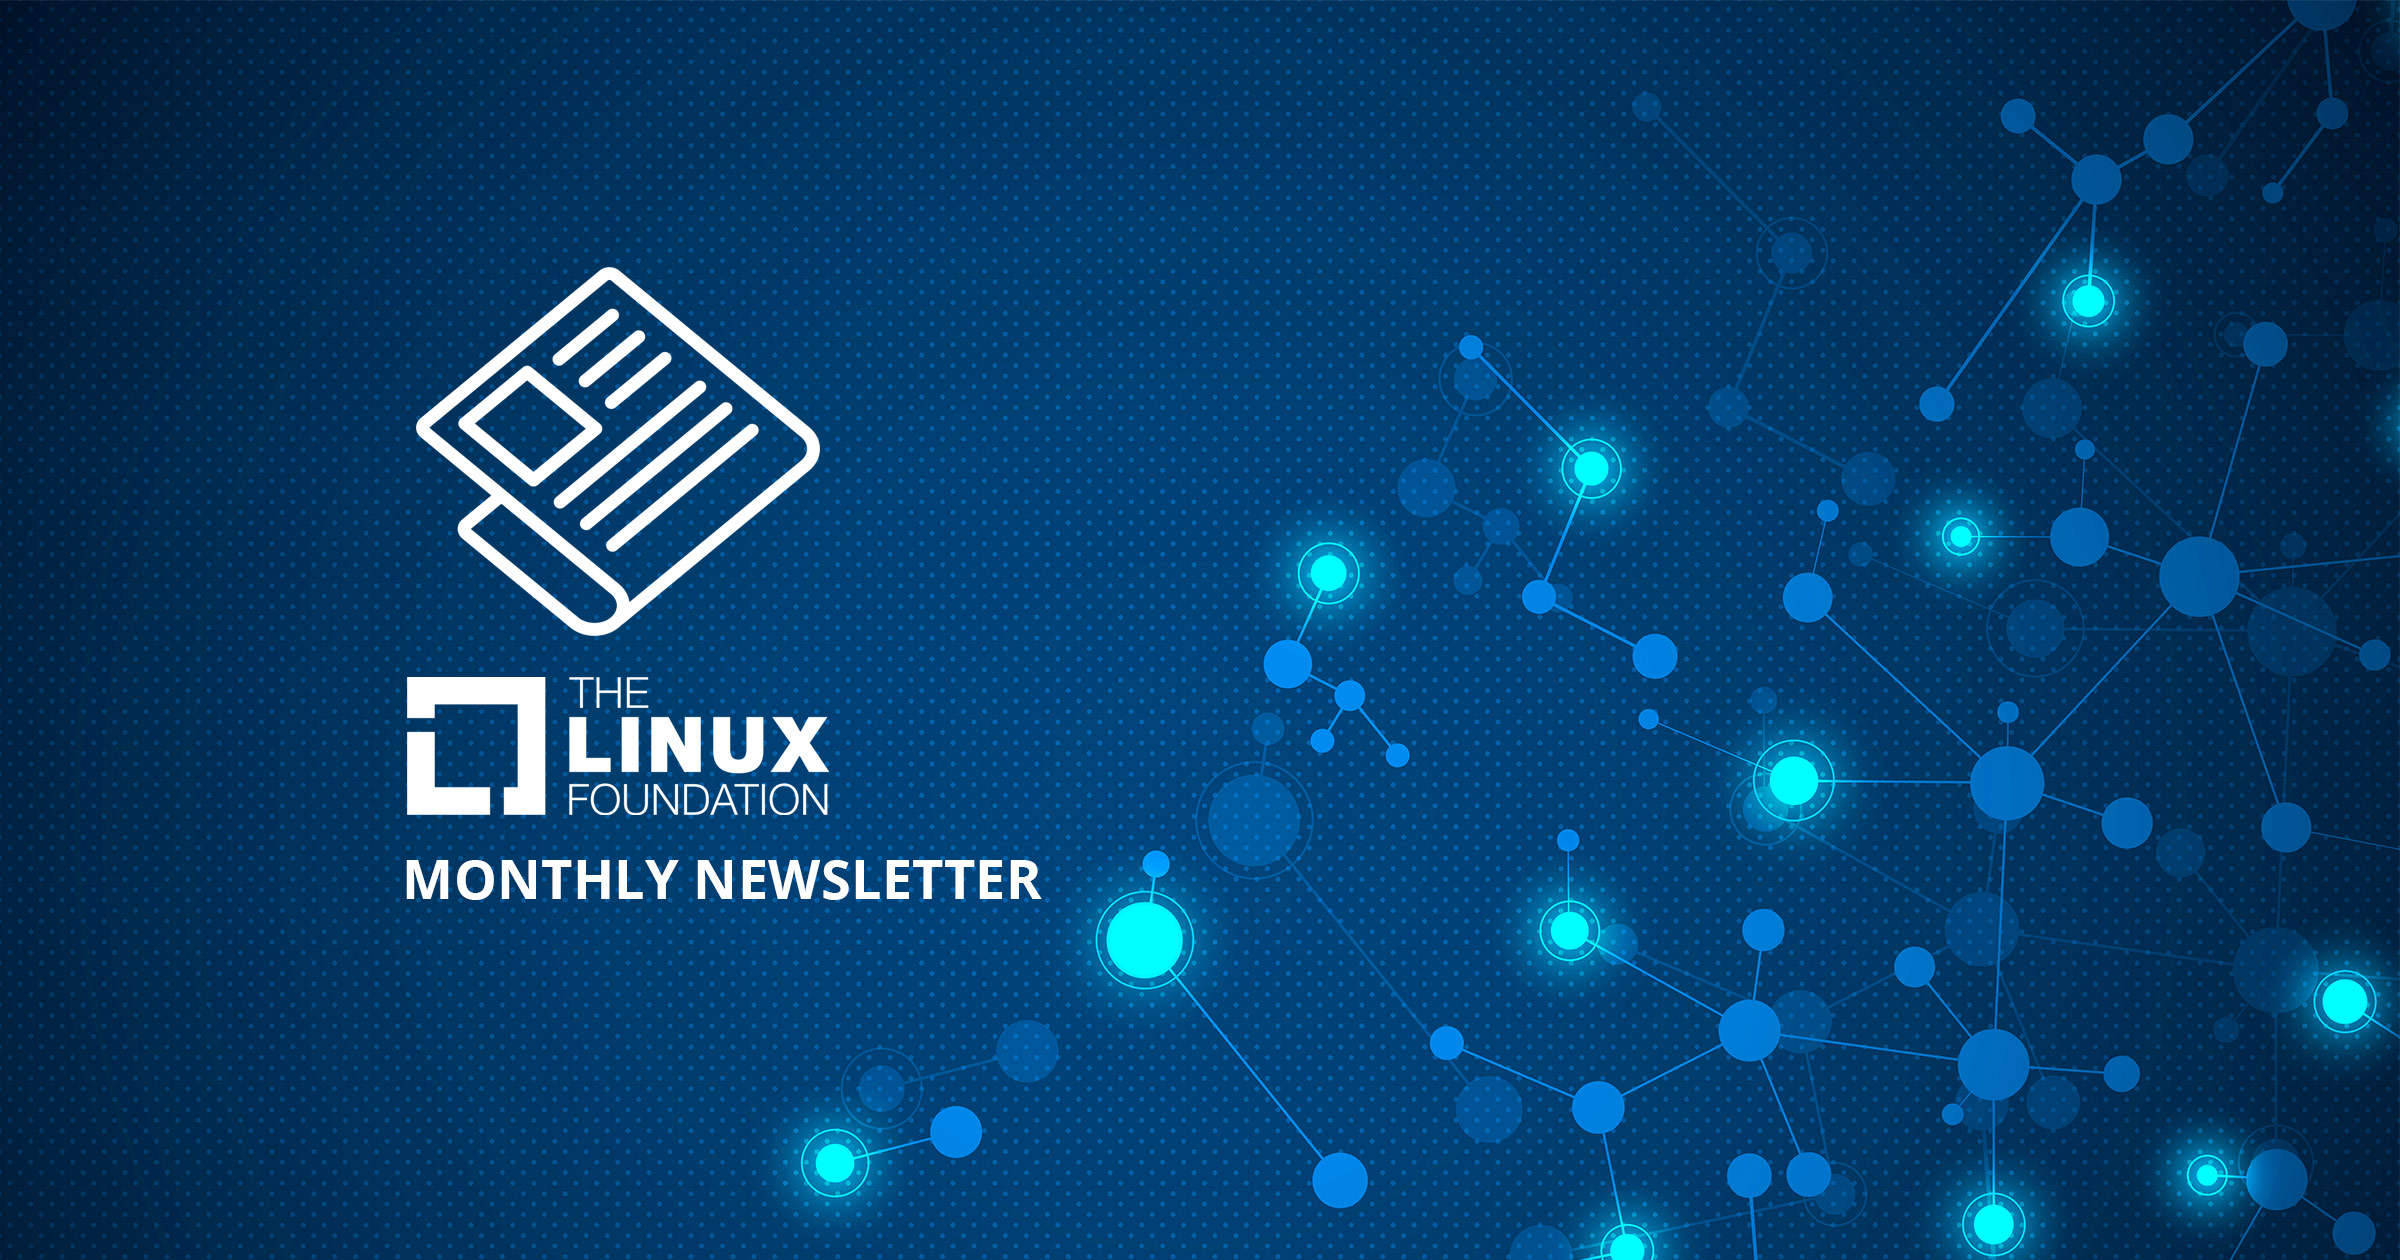 Monthly Newsletter Image